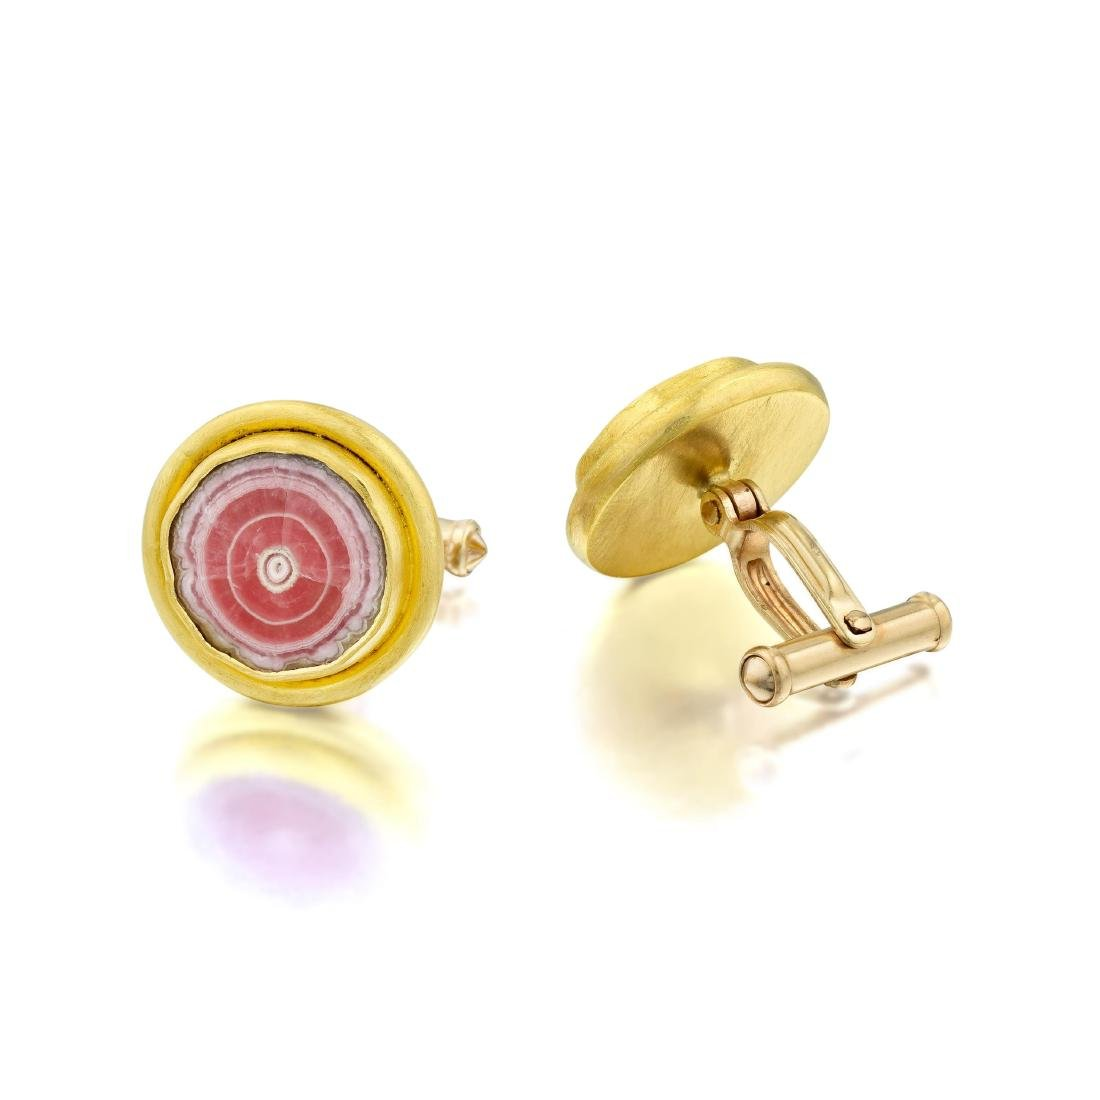 A Pair of 22K Gold Rhodochrosite Cufflinks